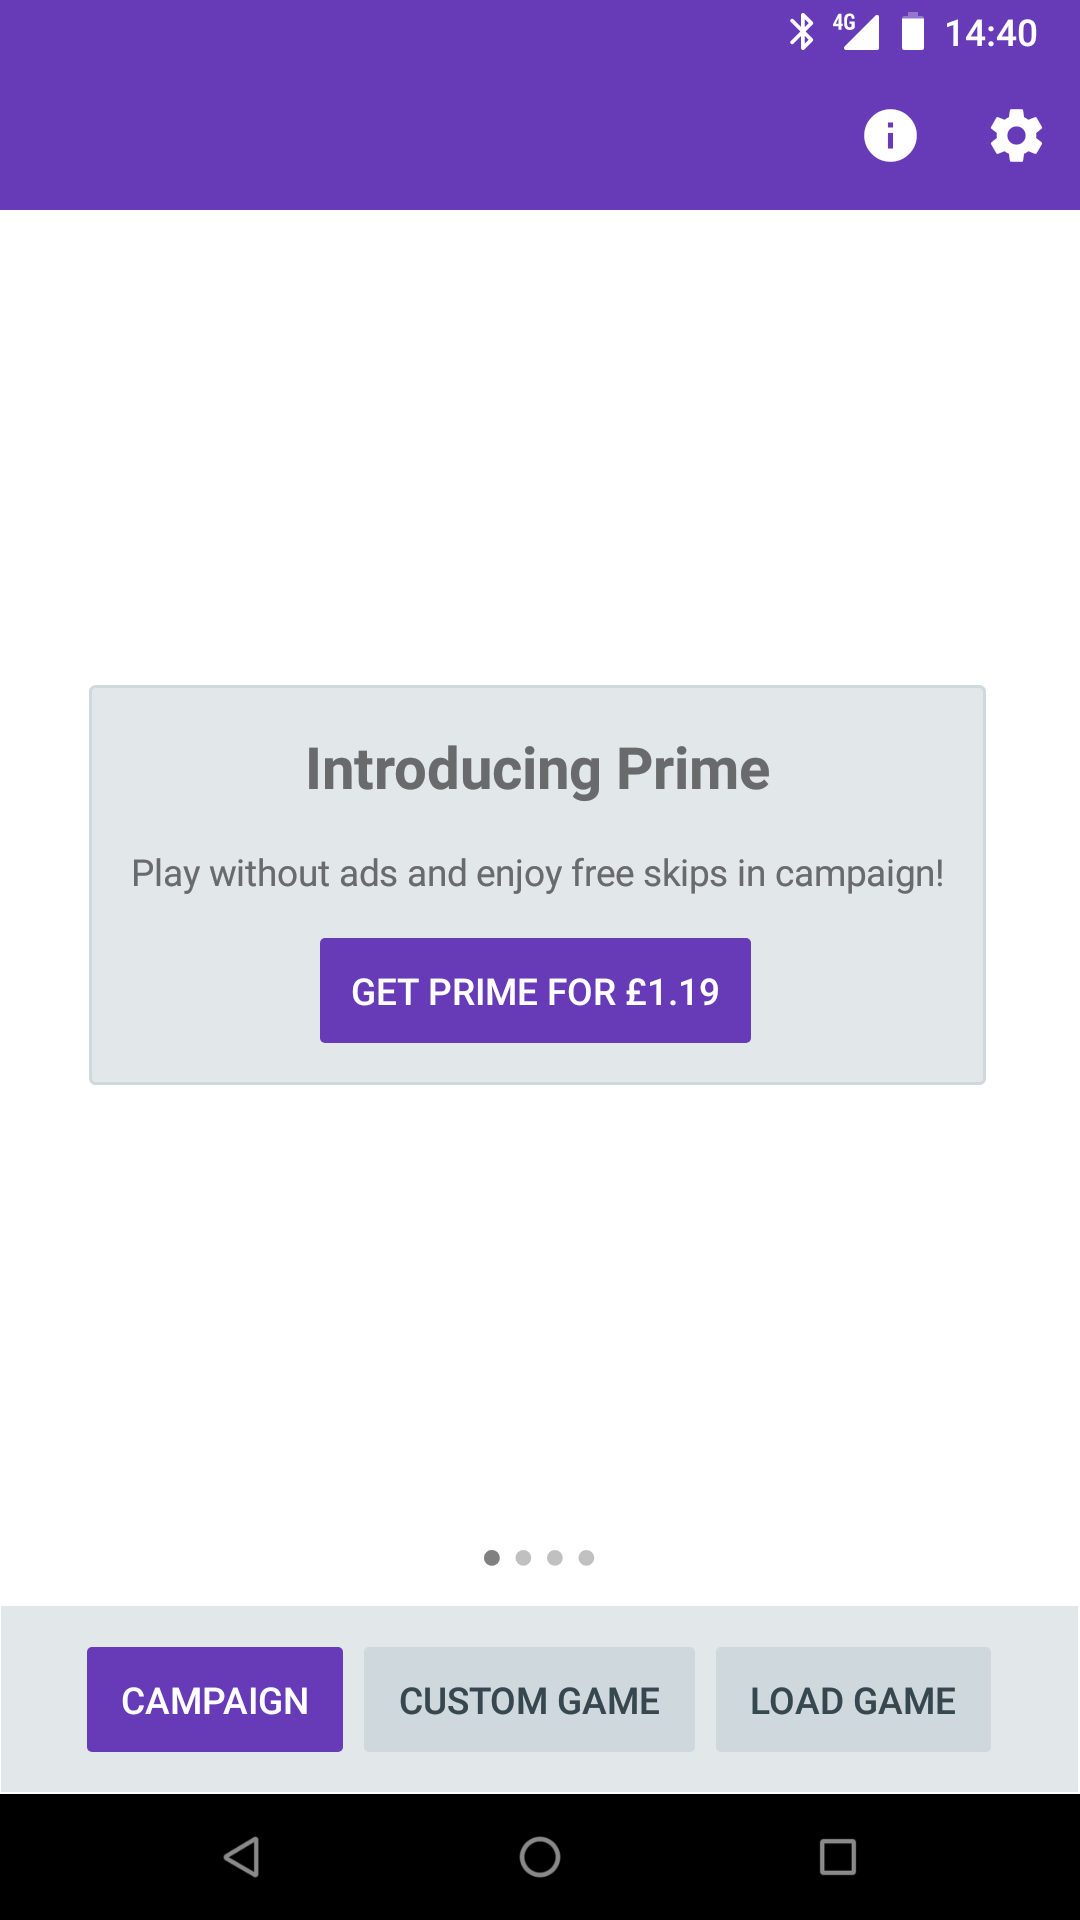 Introducing Prime in 0.11